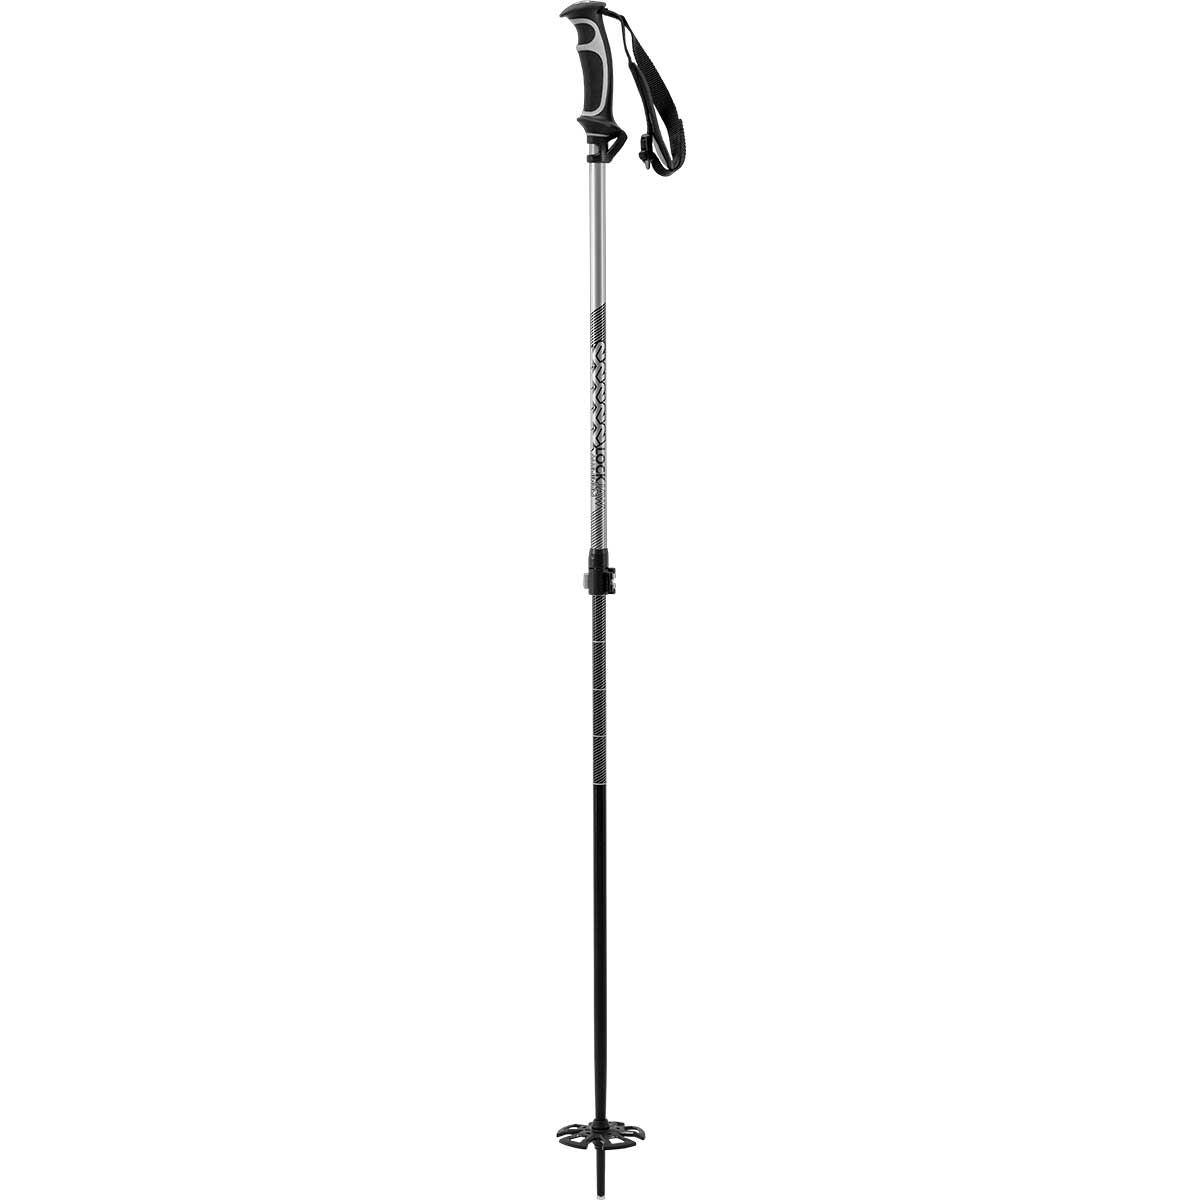 K2 LockJaw Aluminum Pole